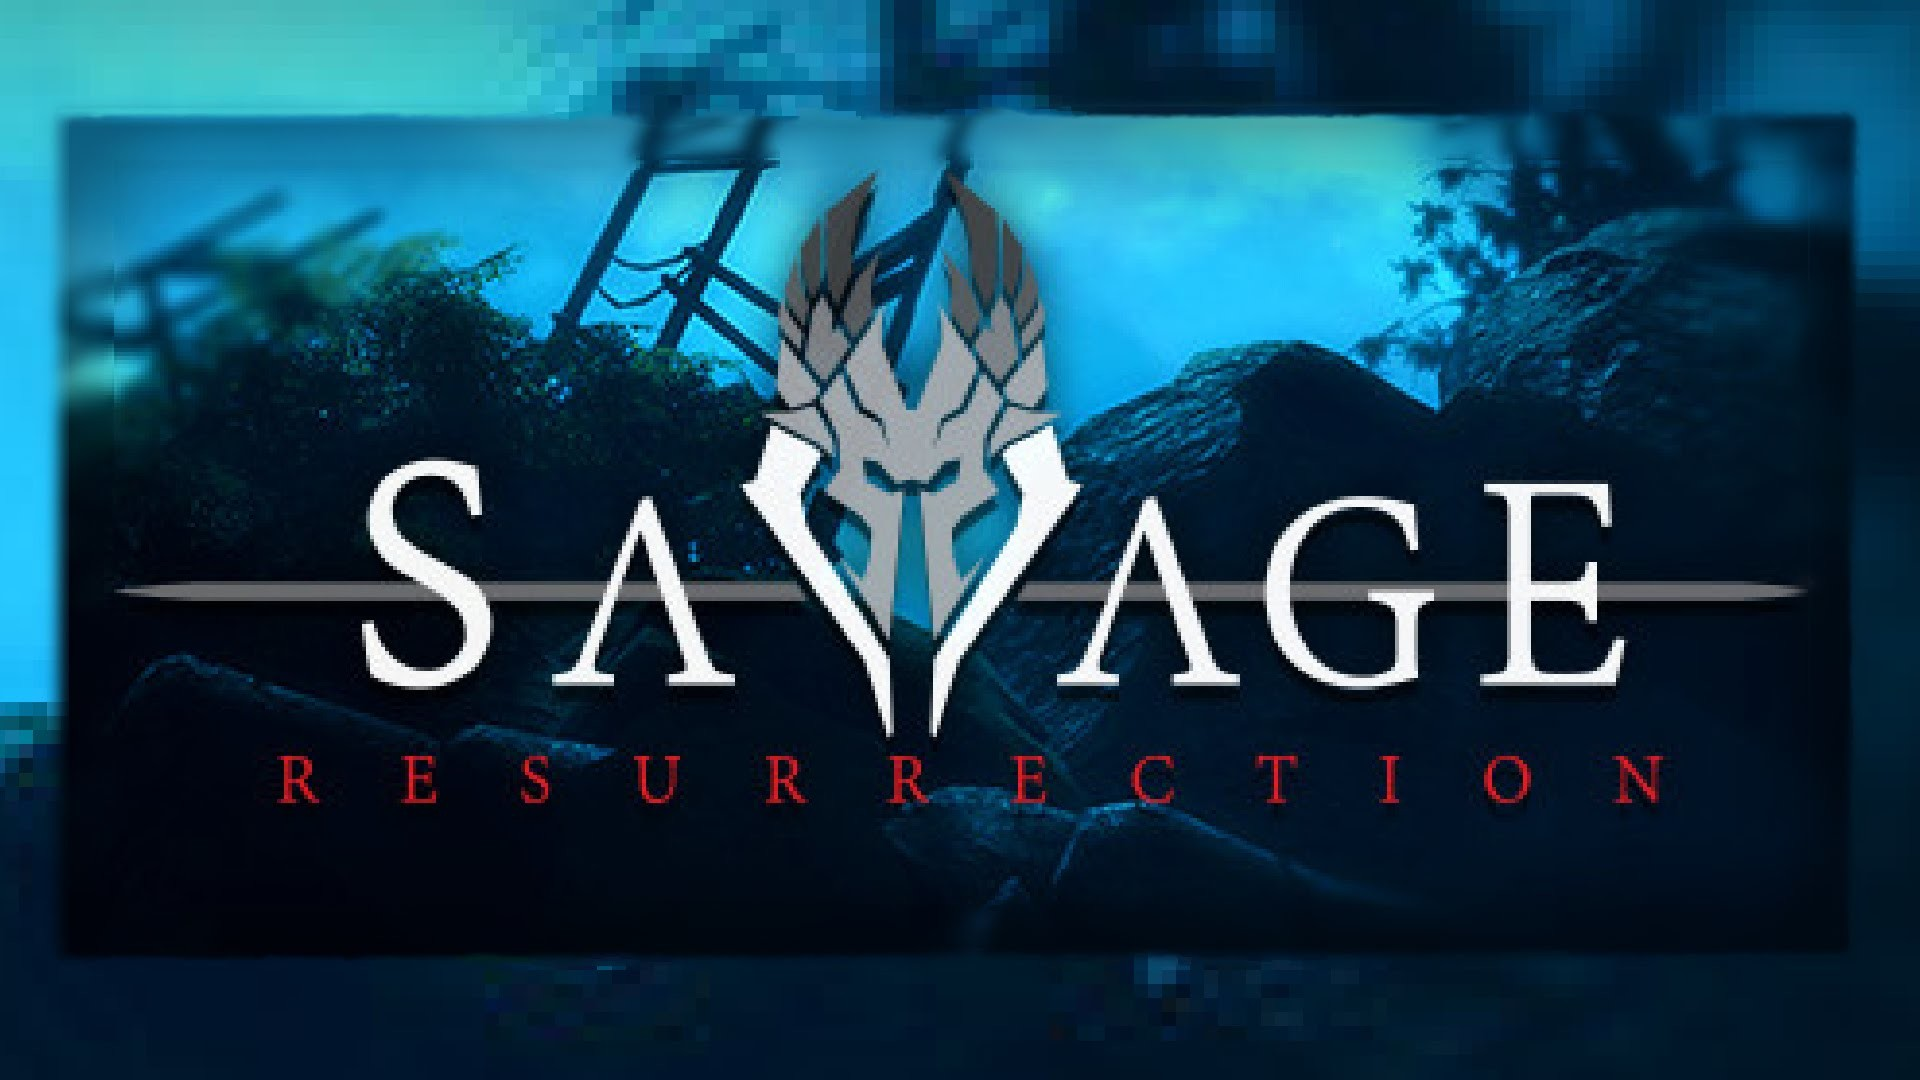 1920x1080 THE BEST GAME I'VE PLAYED IN A WHILE | Savage Resurrection